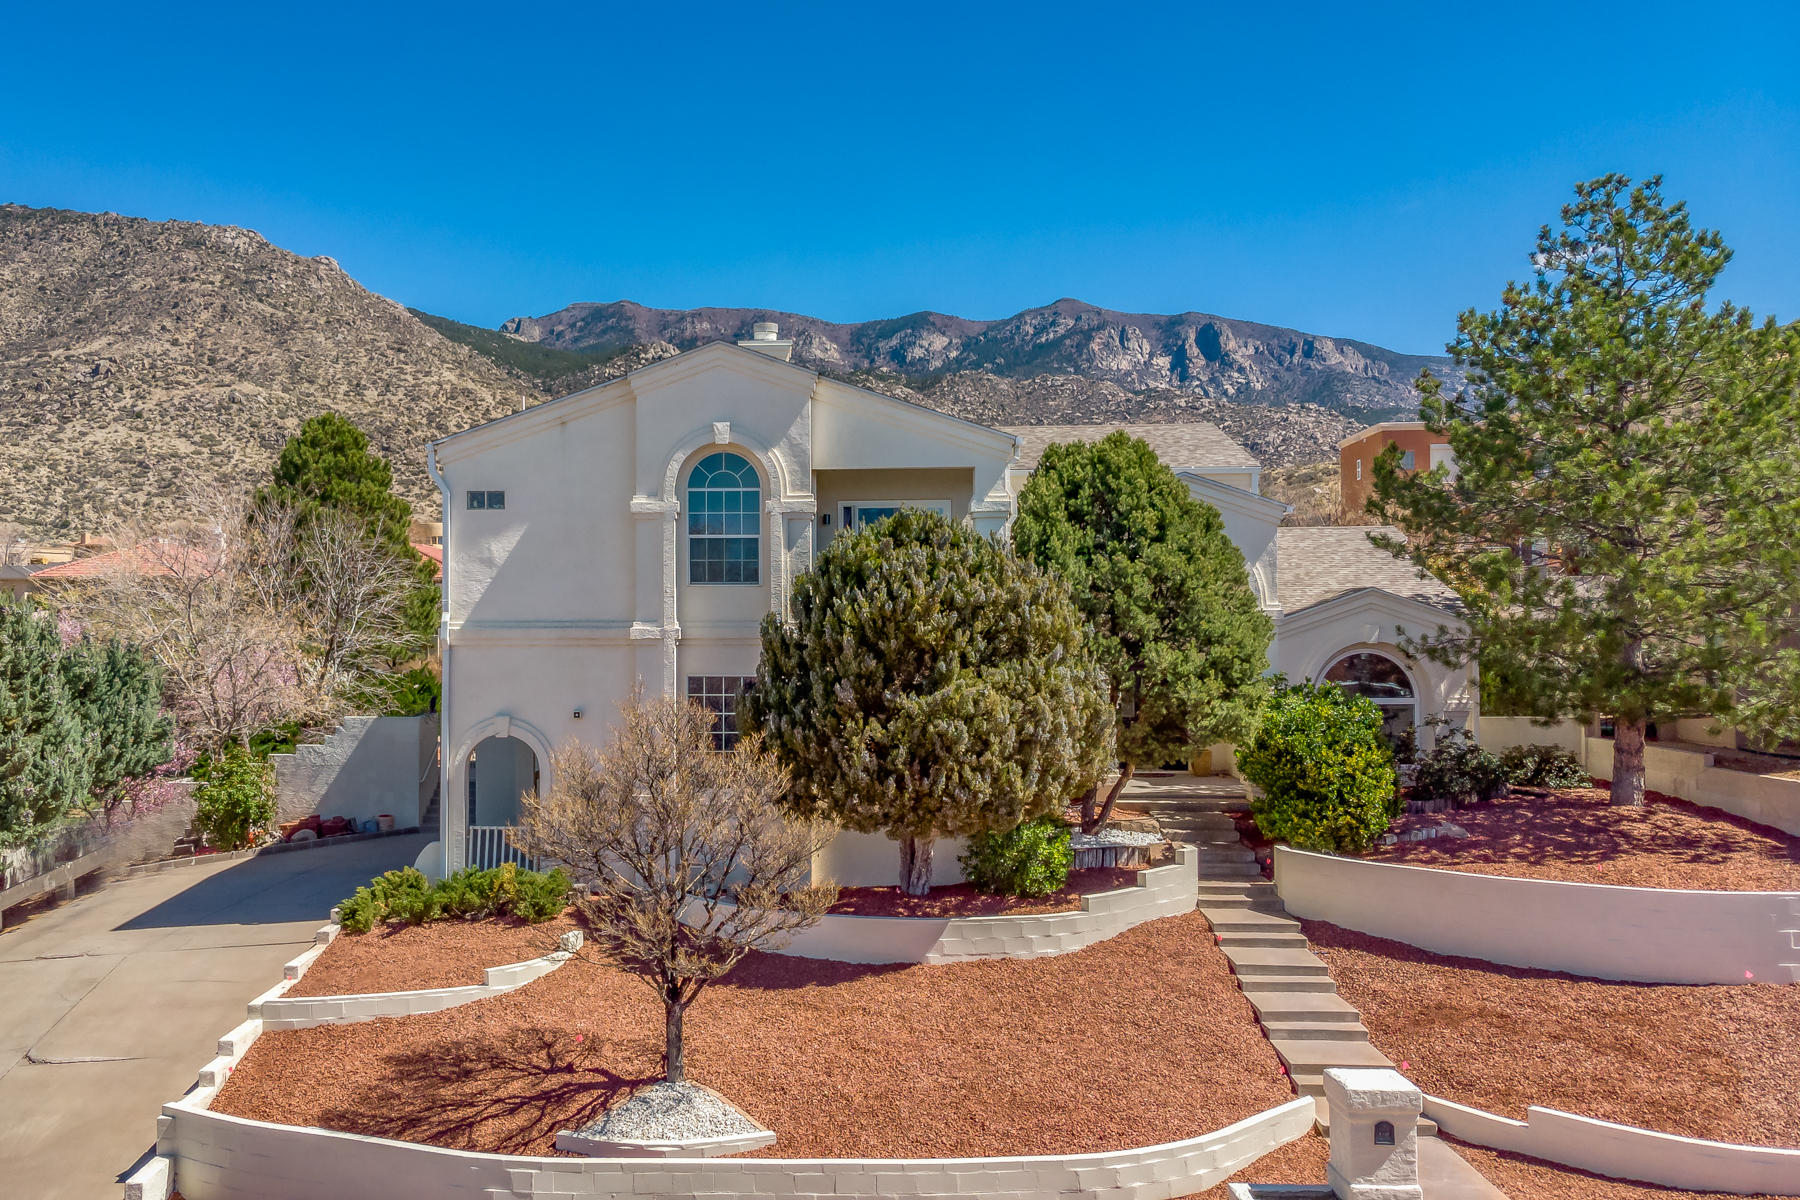 1612 TORRIBIO Drive NE, Albuquerque, NM 87112 - Albuquerque, NM real estate listing